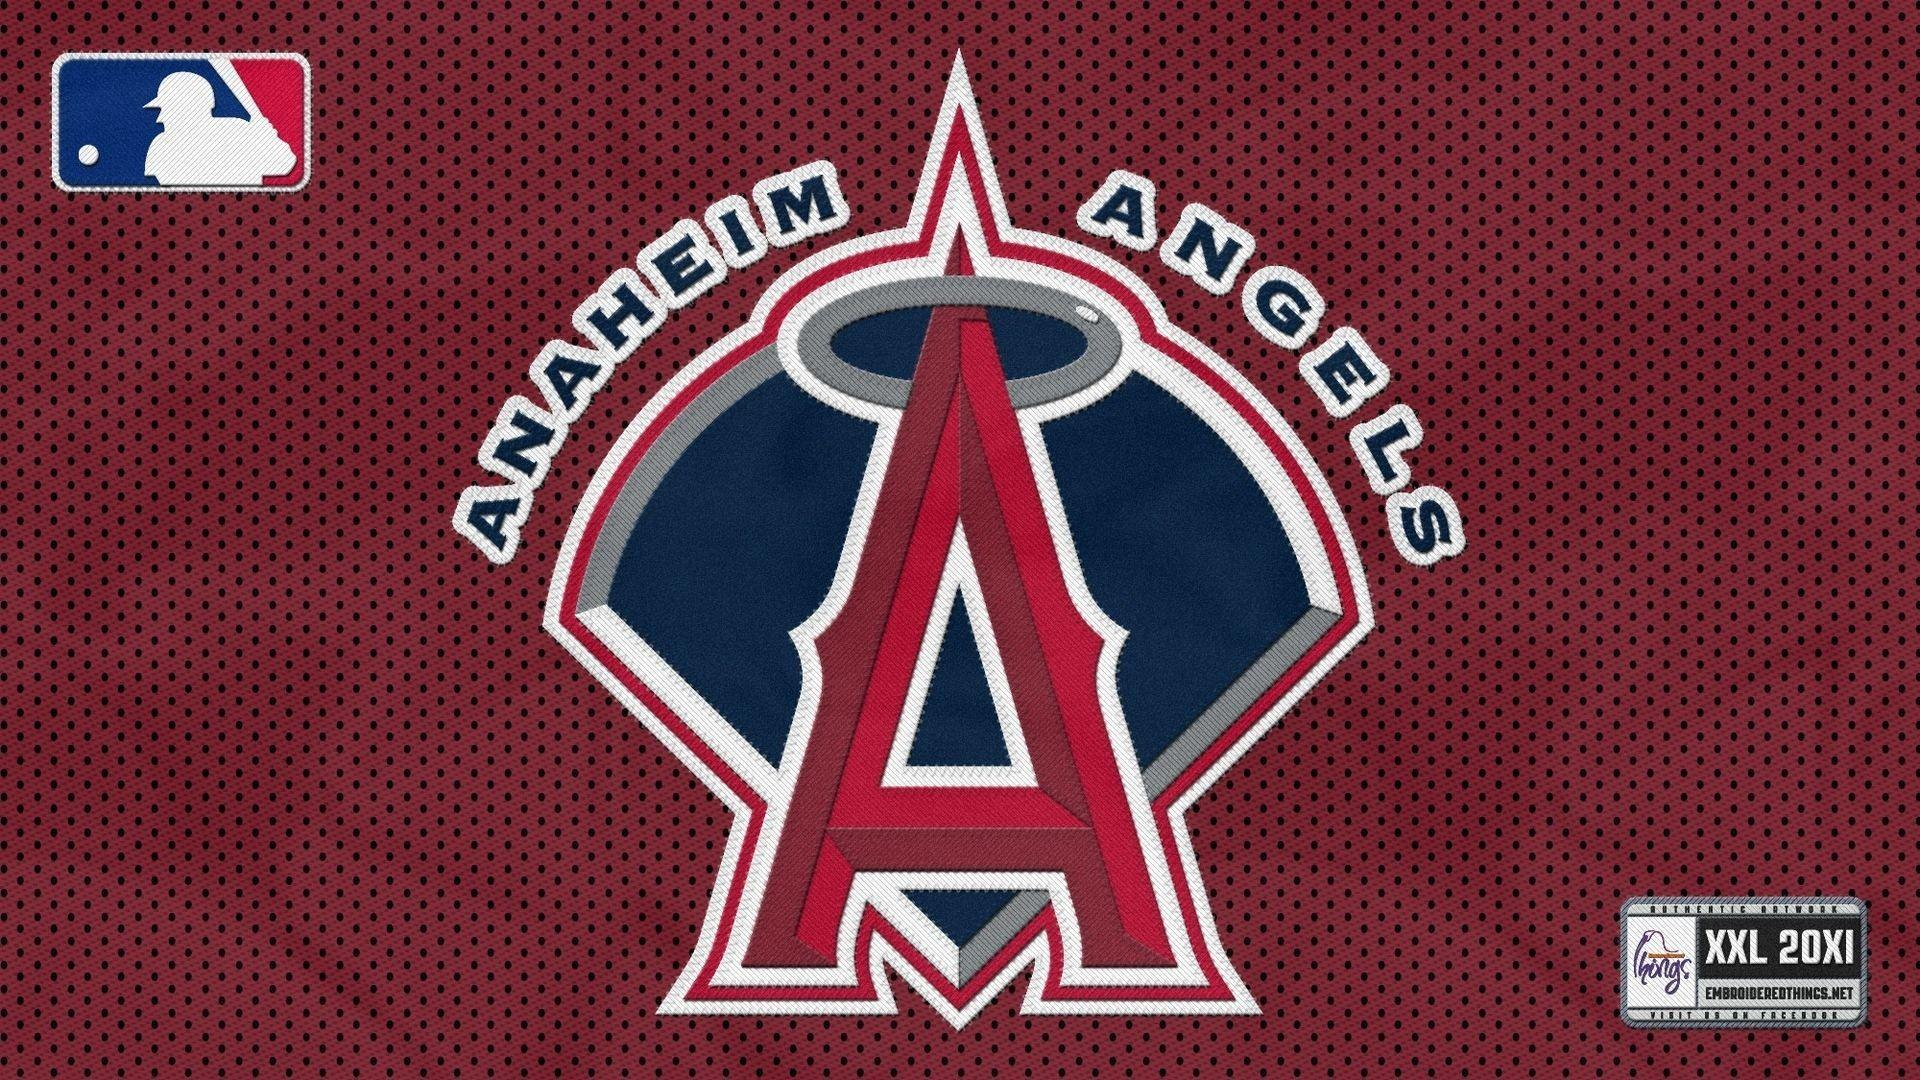 1920x1080 Sports, Los Angeles Angels, Los Angeles Angels Brands